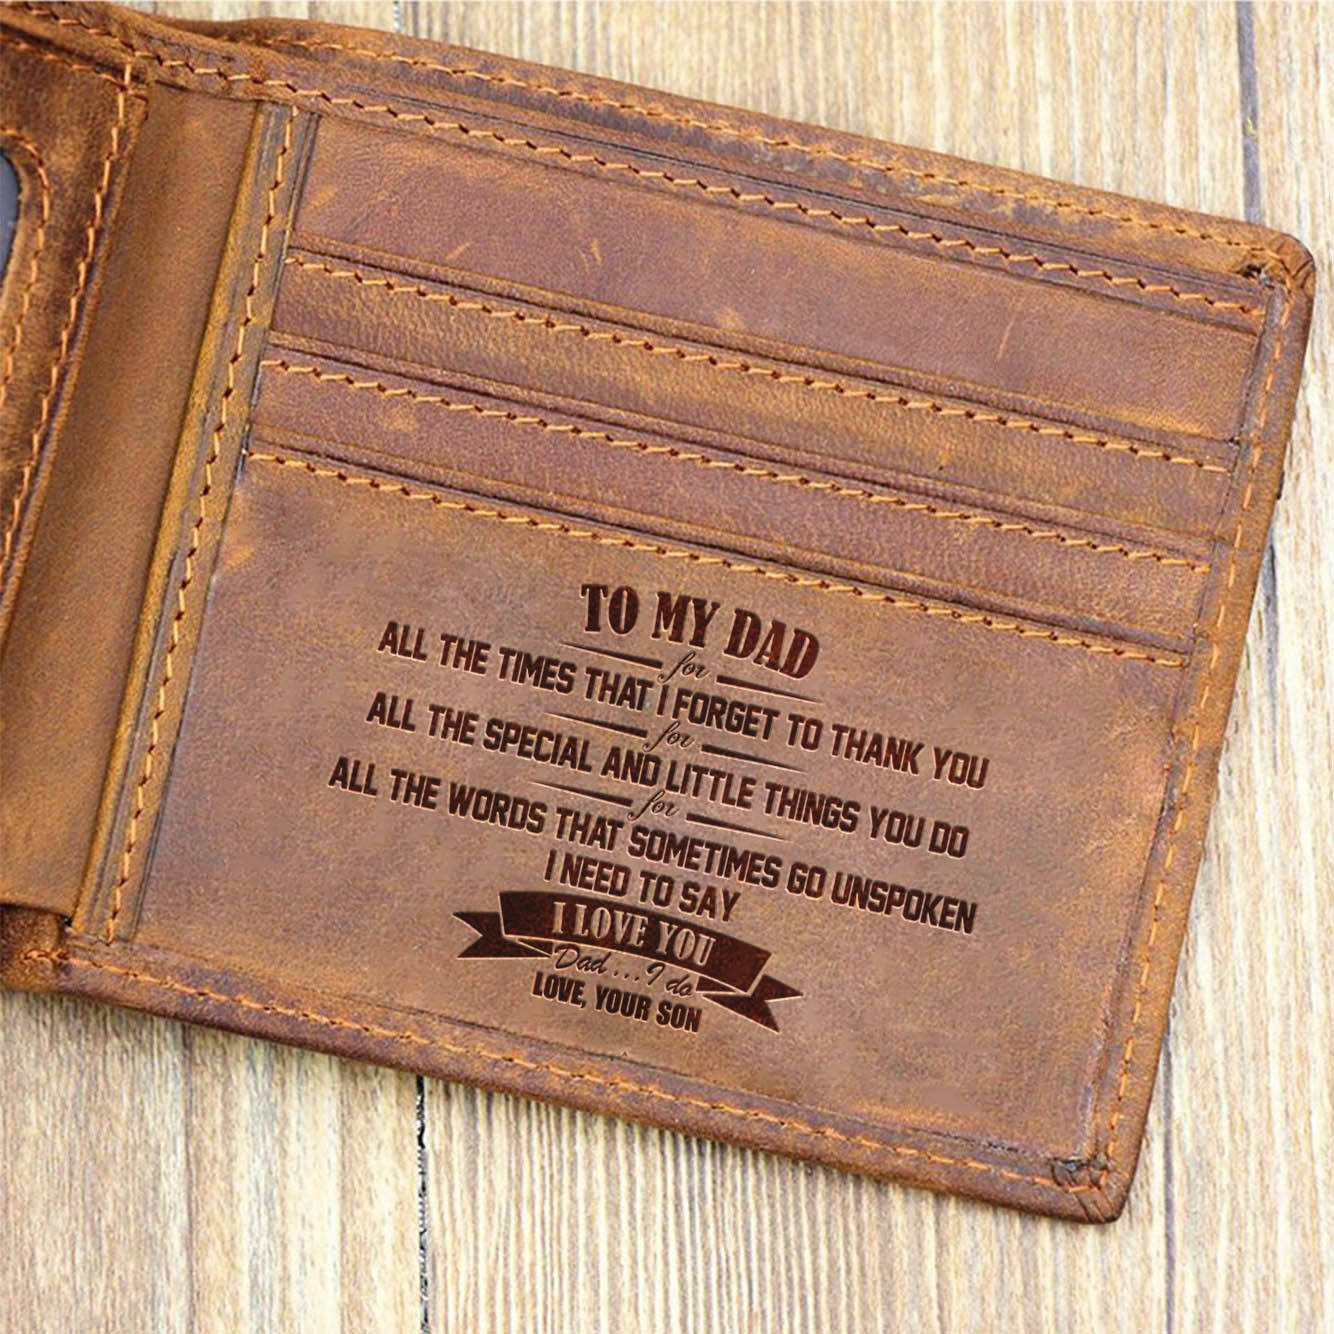 From Son To Dad - I Need To Say I Love You - Bifold Wallet